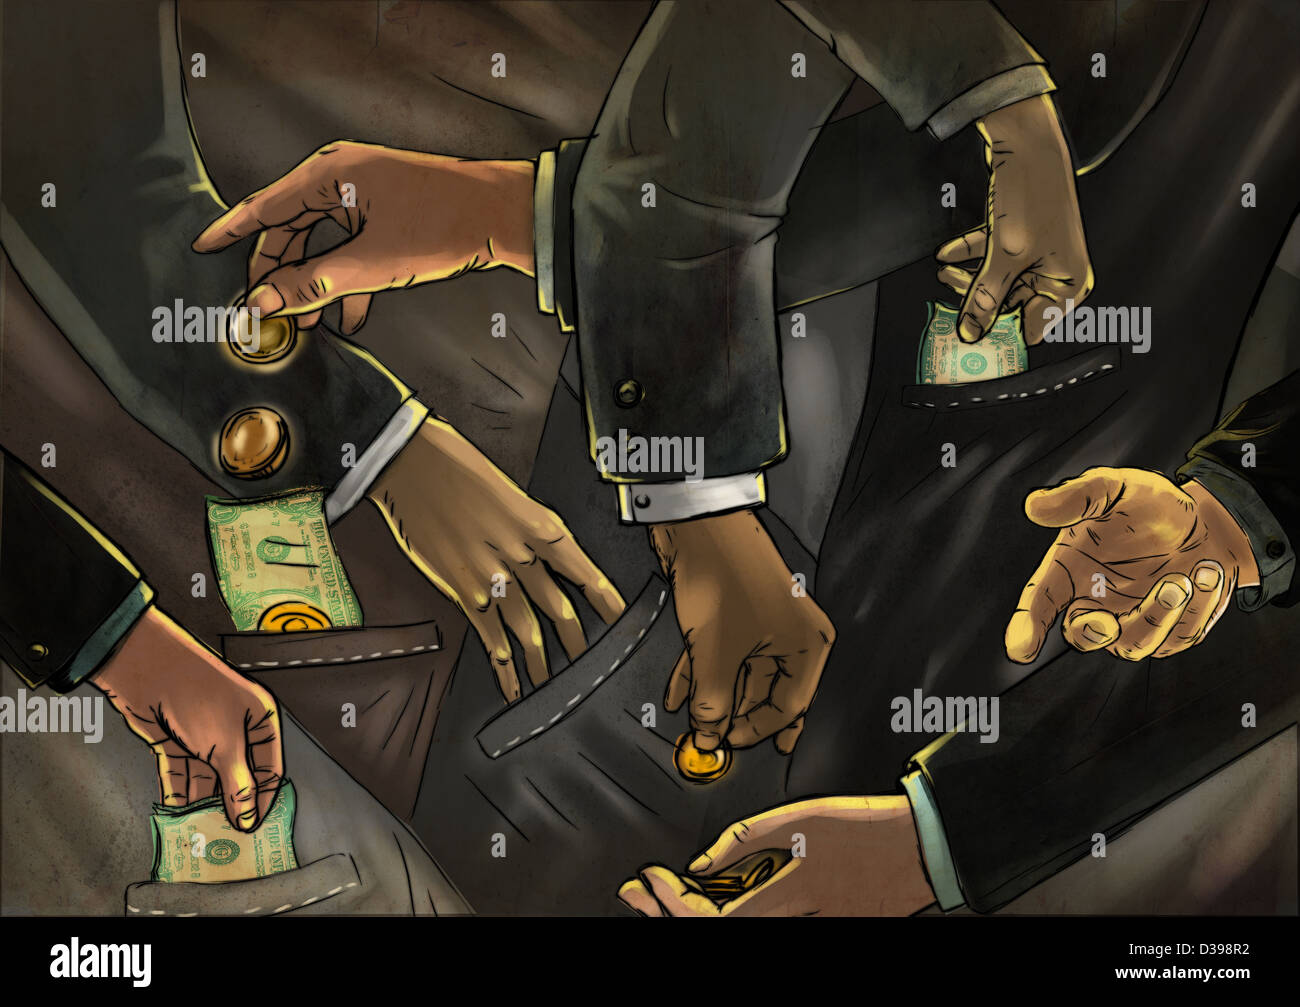 Illustrative image of business people exchanging money representing fraud - Stock Image